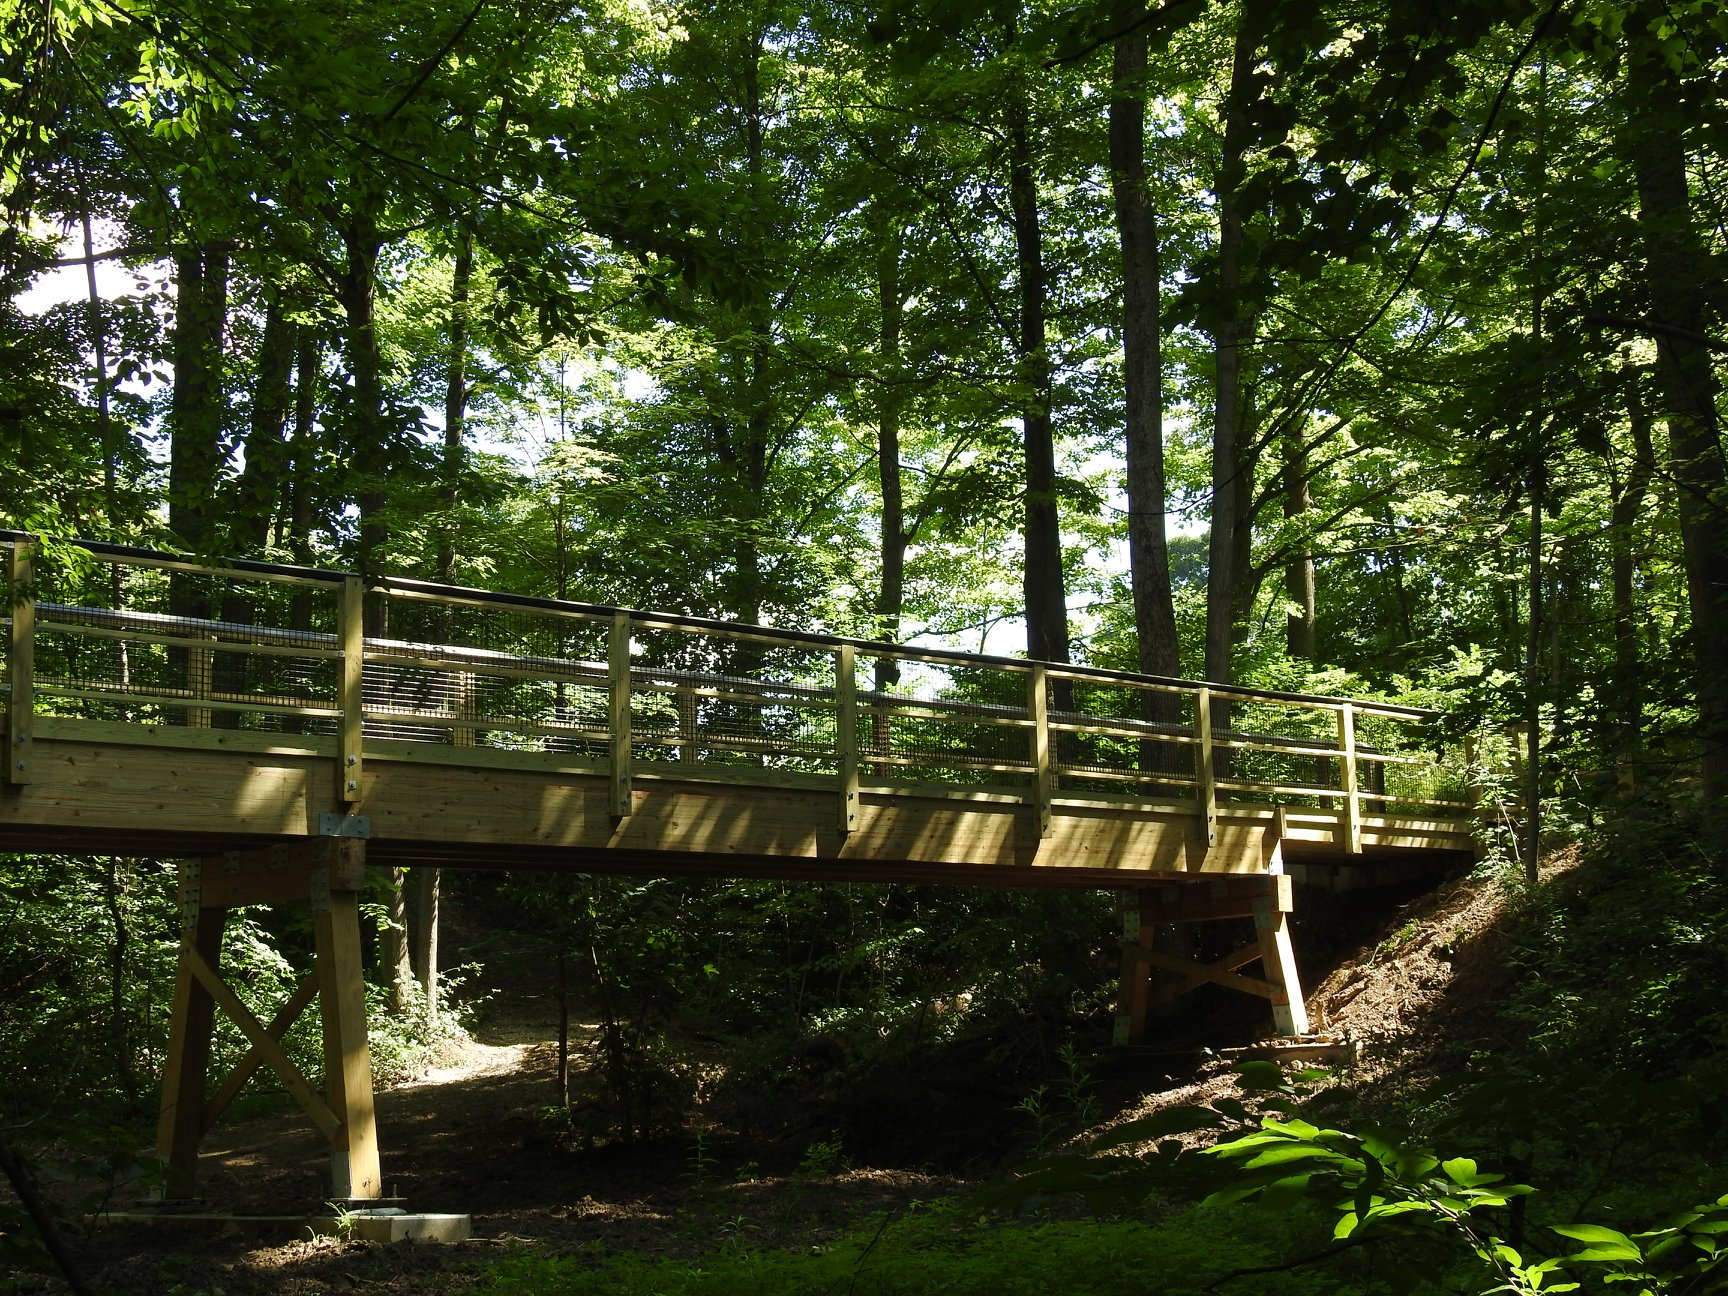 A bridge in the woods of the Nature Center property